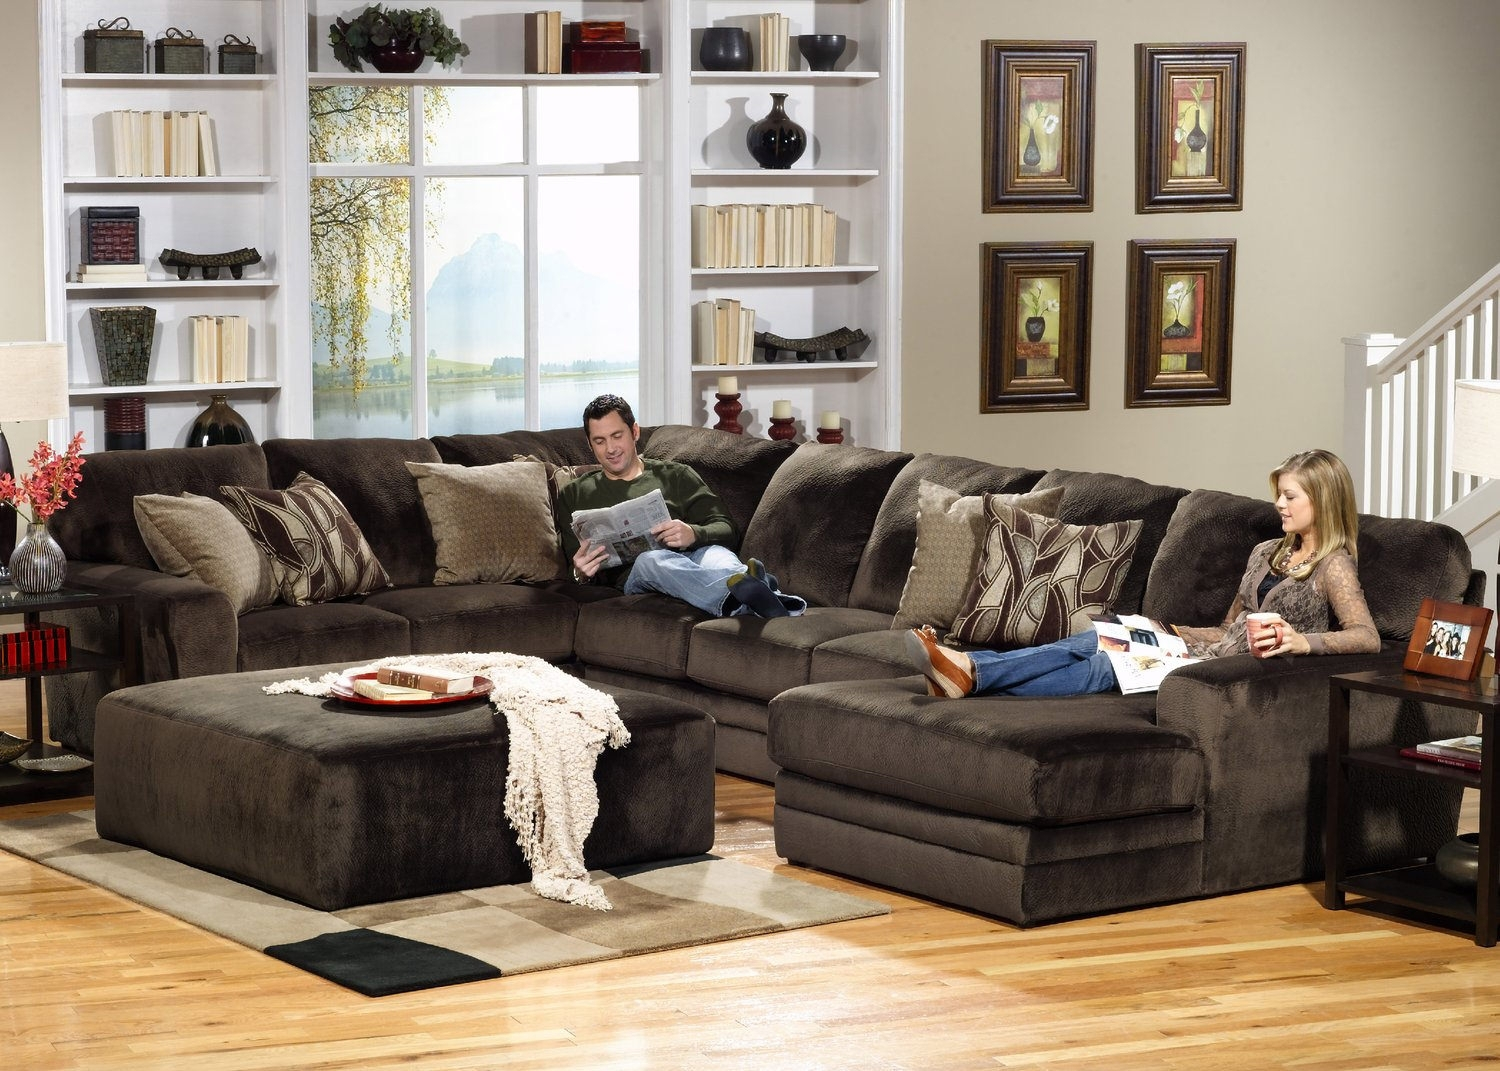 Rainier 3 Piece Sectional | Hom Furniture Within St Cloud Mn Sectional Sofas (Image 5 of 10)